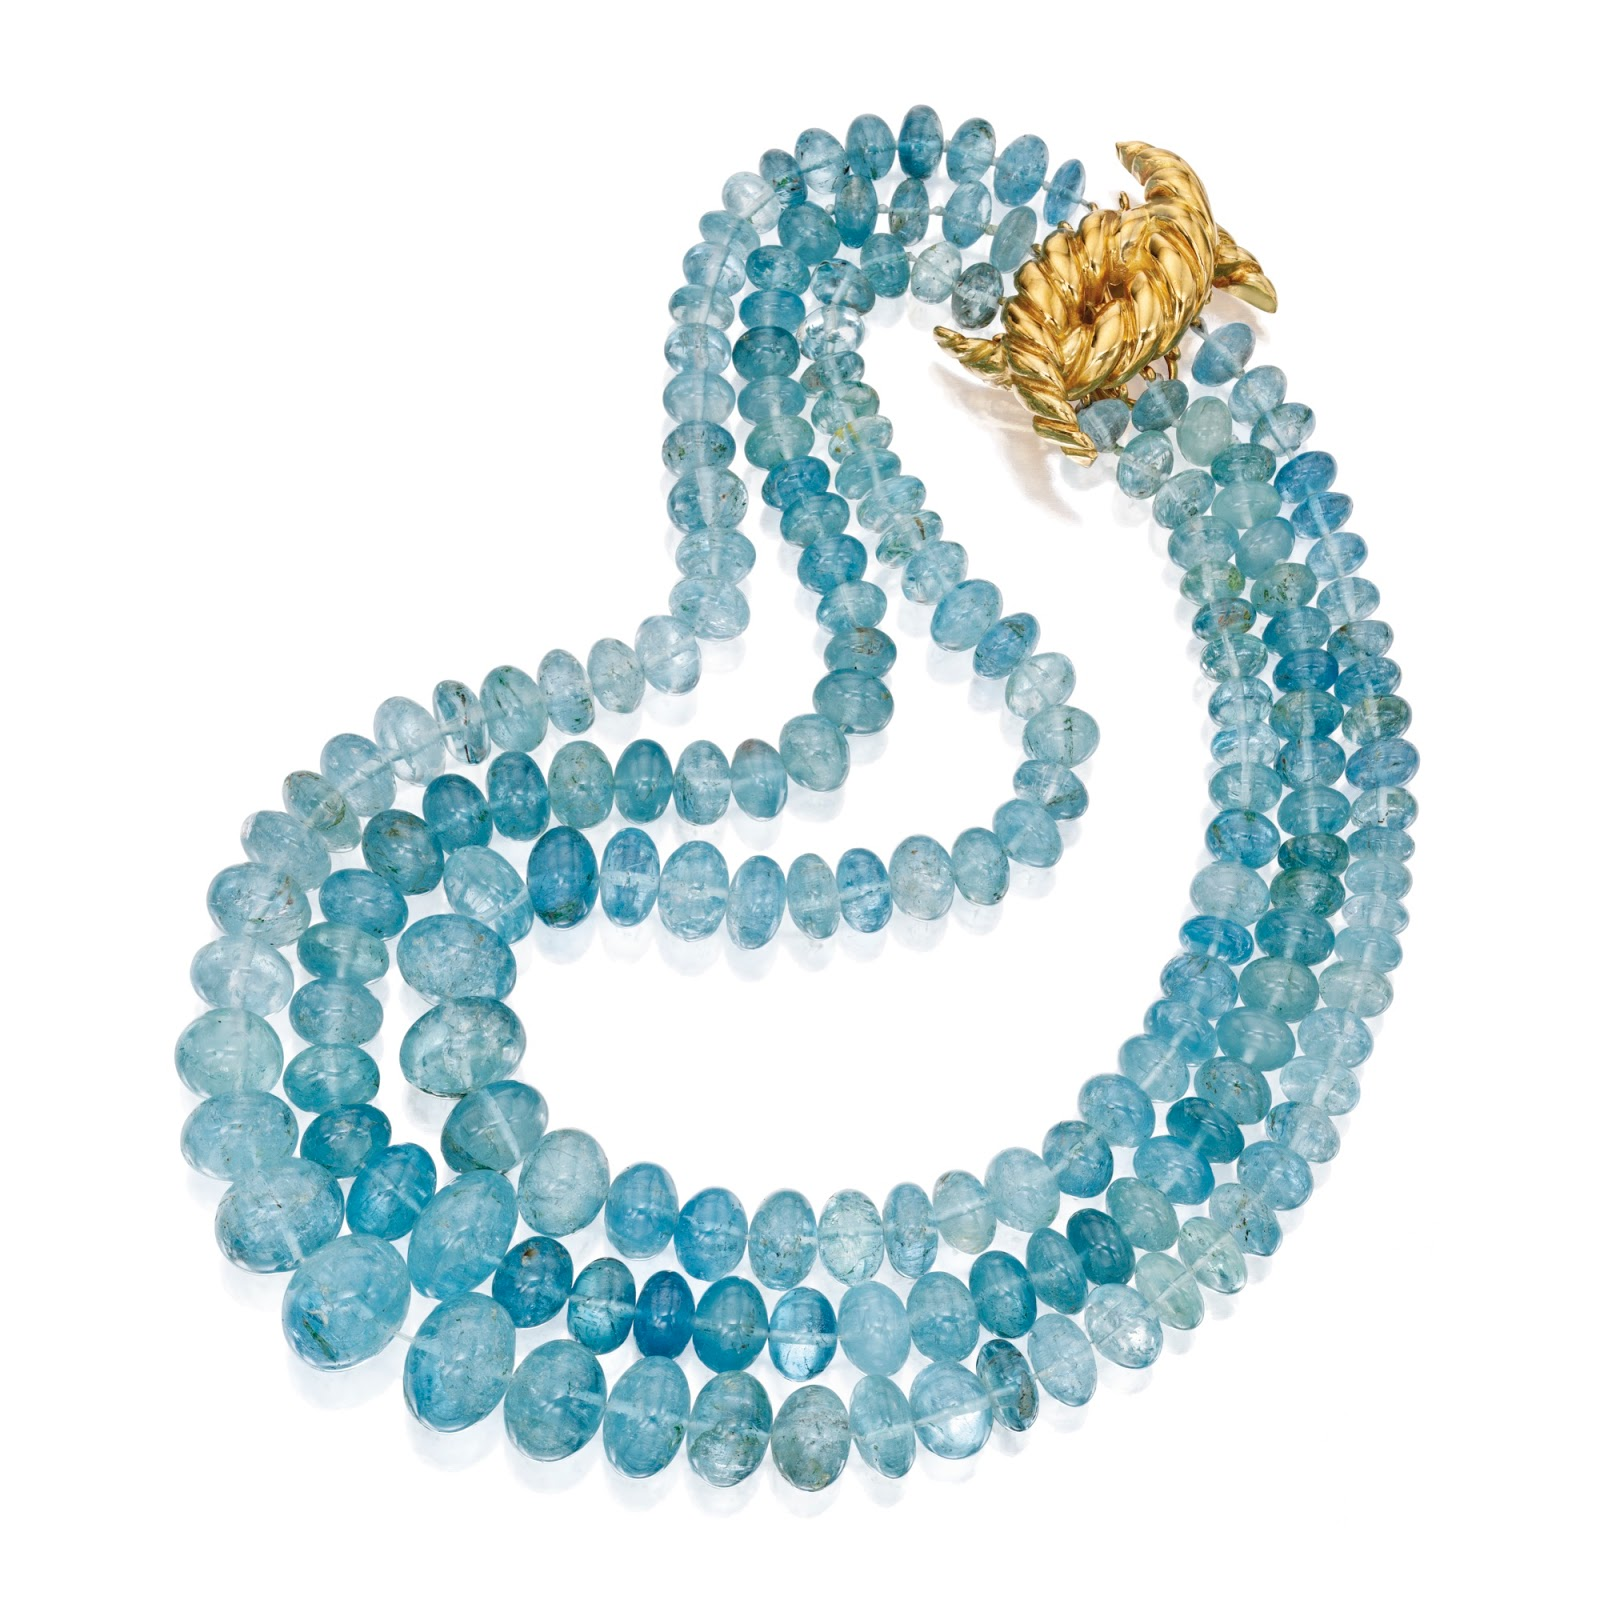 Marie Poutine's Jewels & Royals: Aquamarine Necklaces